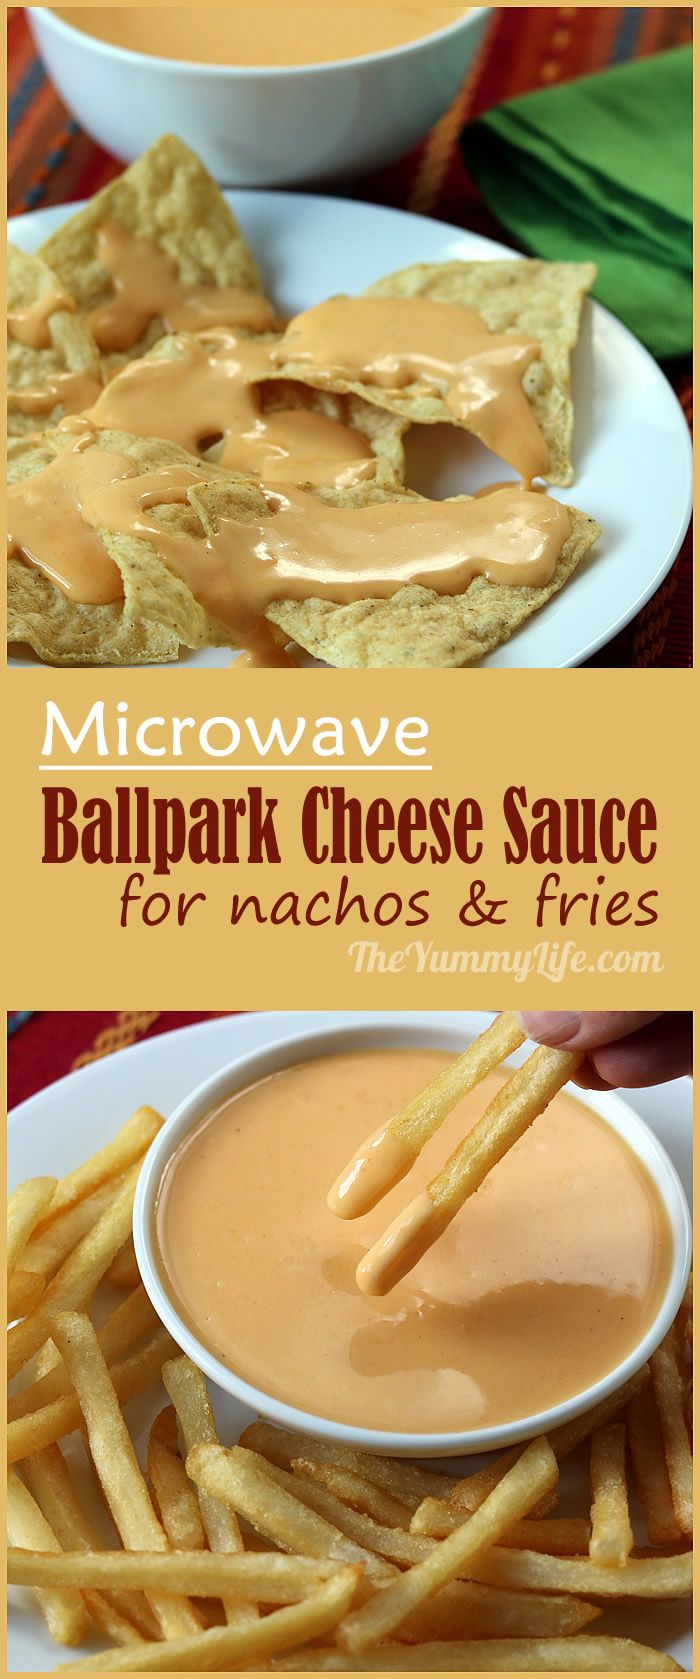 Easy to make in microwave in 3 minutes. Real cheese with no Velveeta! Drizzle on nachos, fries, broccoli, baked potatoes, hot dogs or tacos. Great as sauce for macaroni and cheese. From TheYummyLife.com